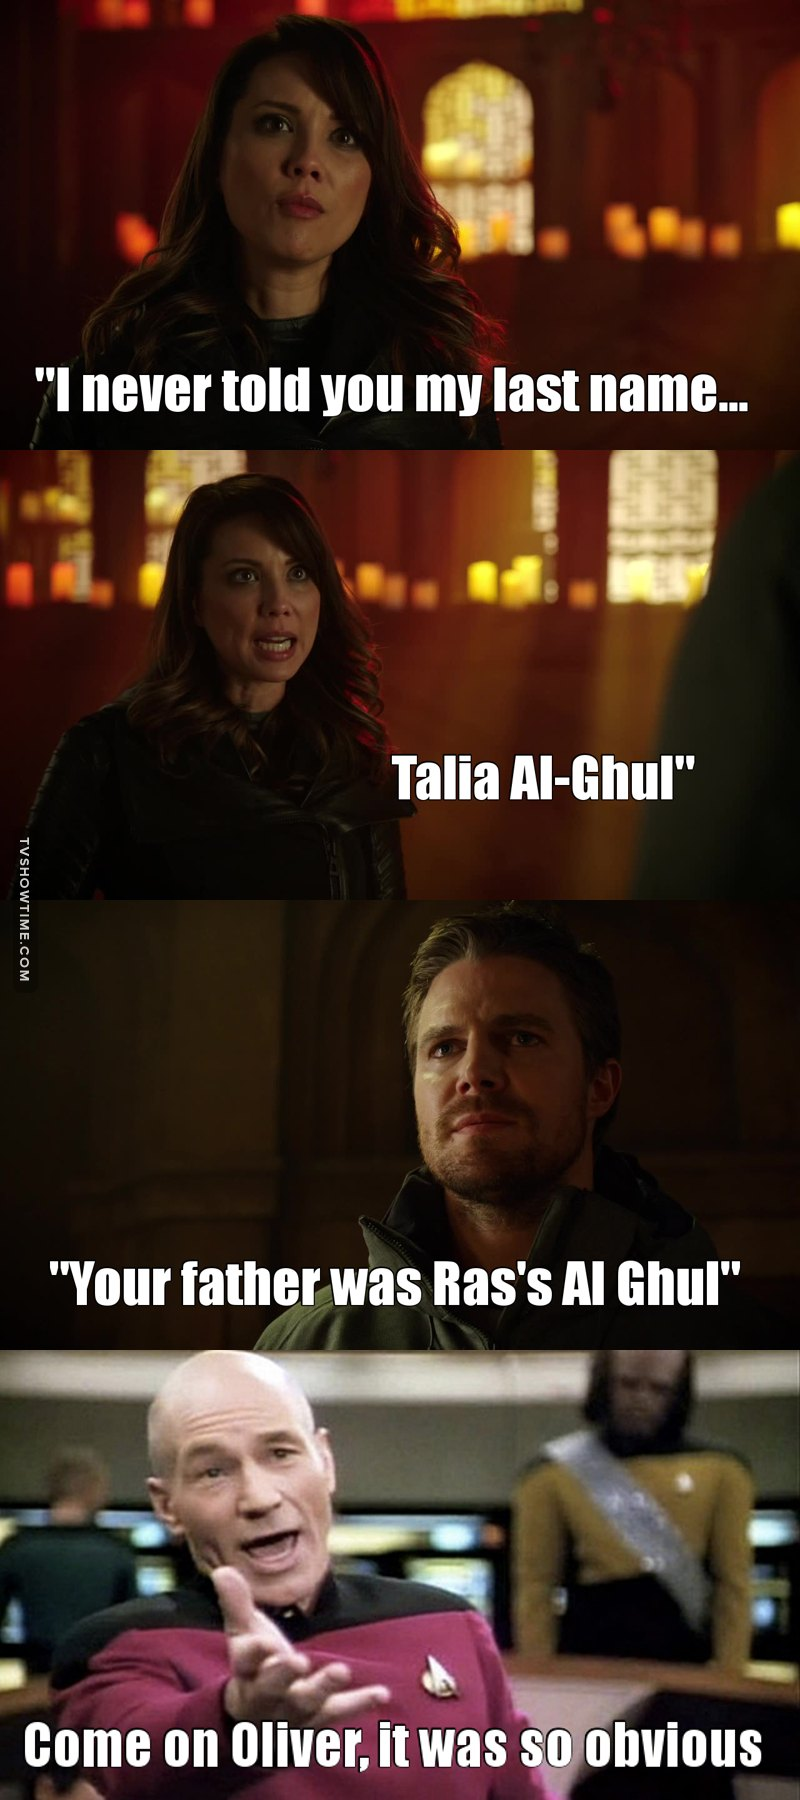 So turns out Oliver is the only one who didn't know she was an Al Ghul. Come on bro, is common knowledge. 😂